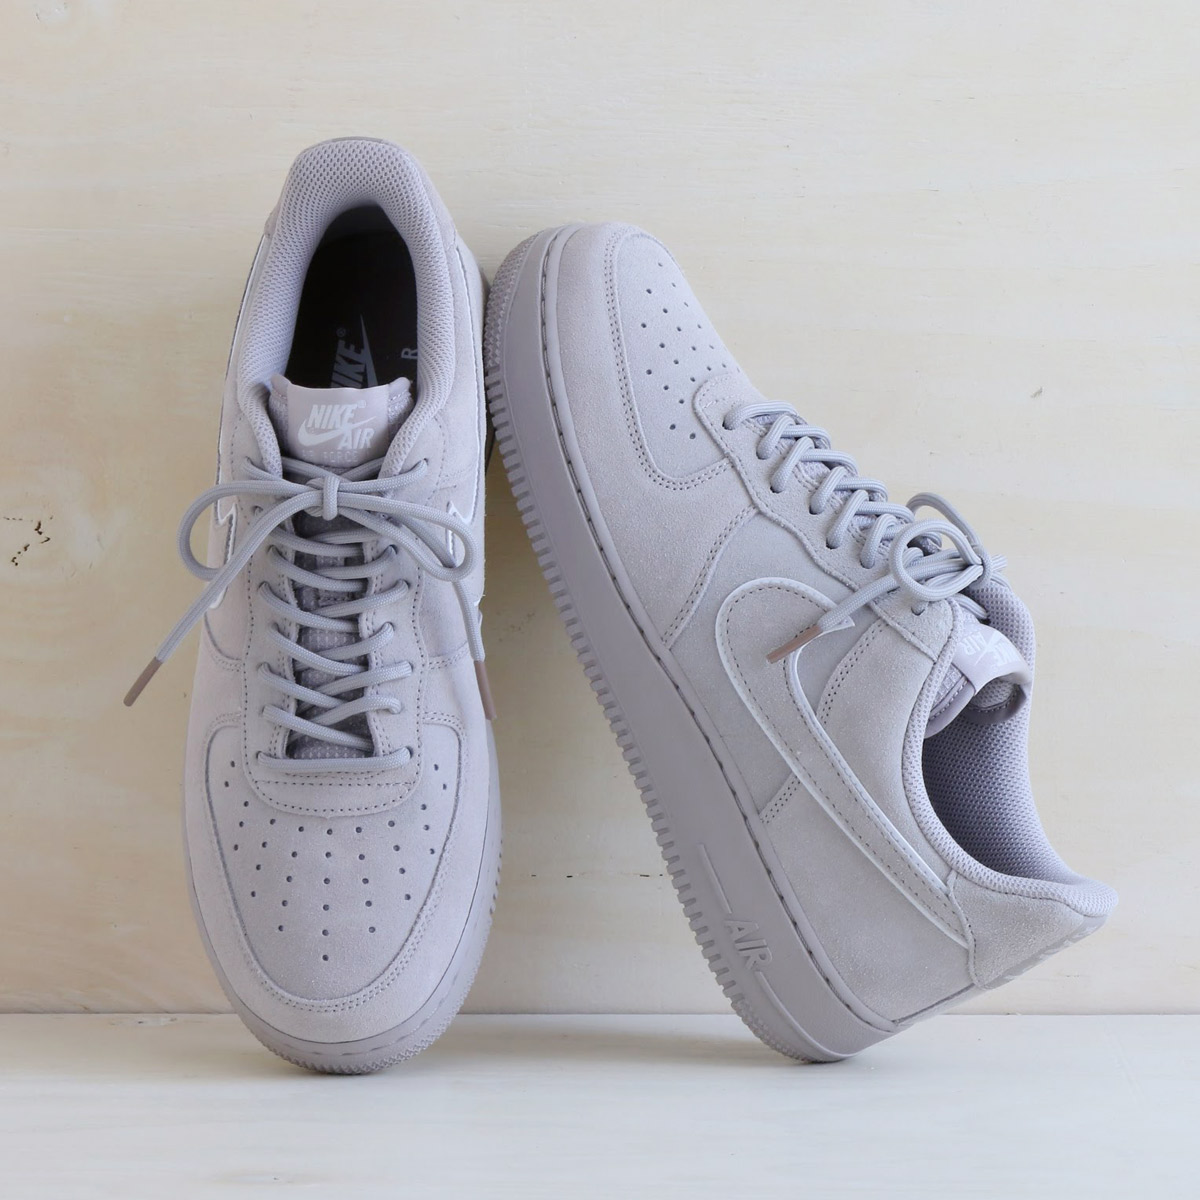 NIKE AIR FORCE 1 '07 LV8 SUEDE (Nike air force 1 07 LV8 suede) (MOON PARTICLE/MOON PARTICLE-SEPIA STONE) 18SU-I